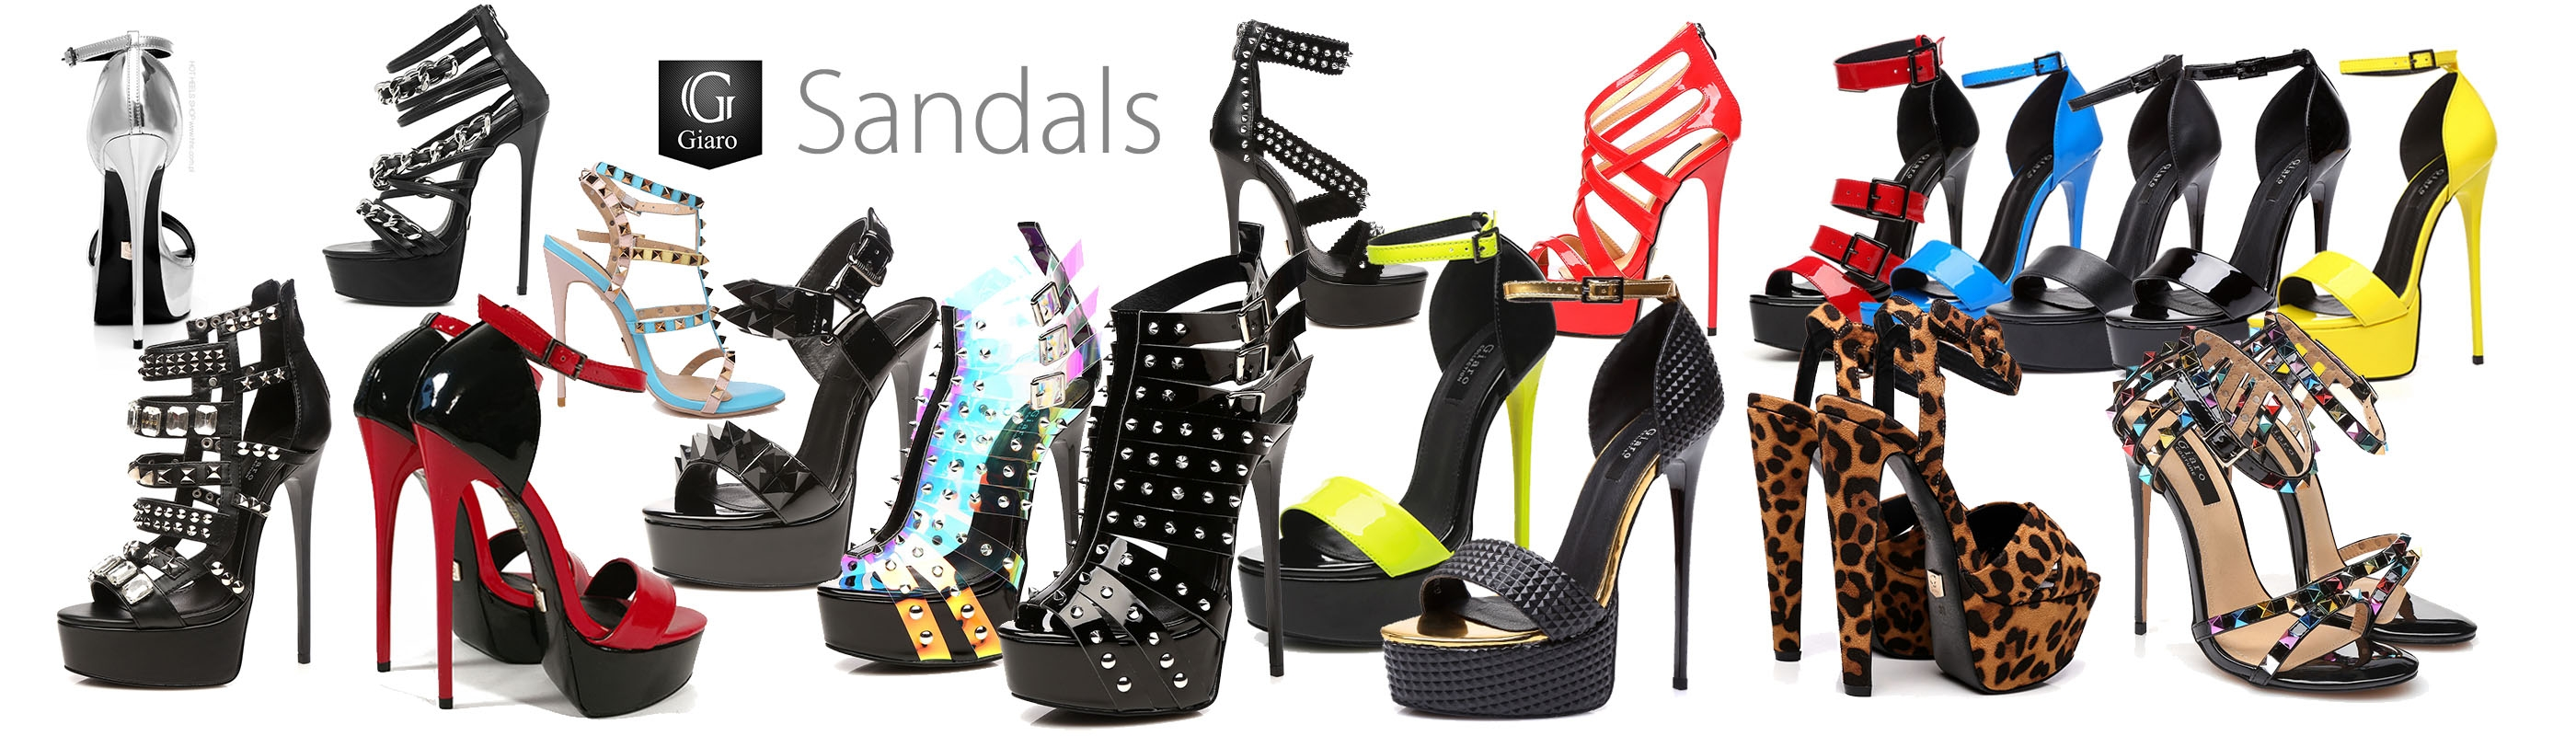 Giaro sandals, more than 50 styles, each kind of heel